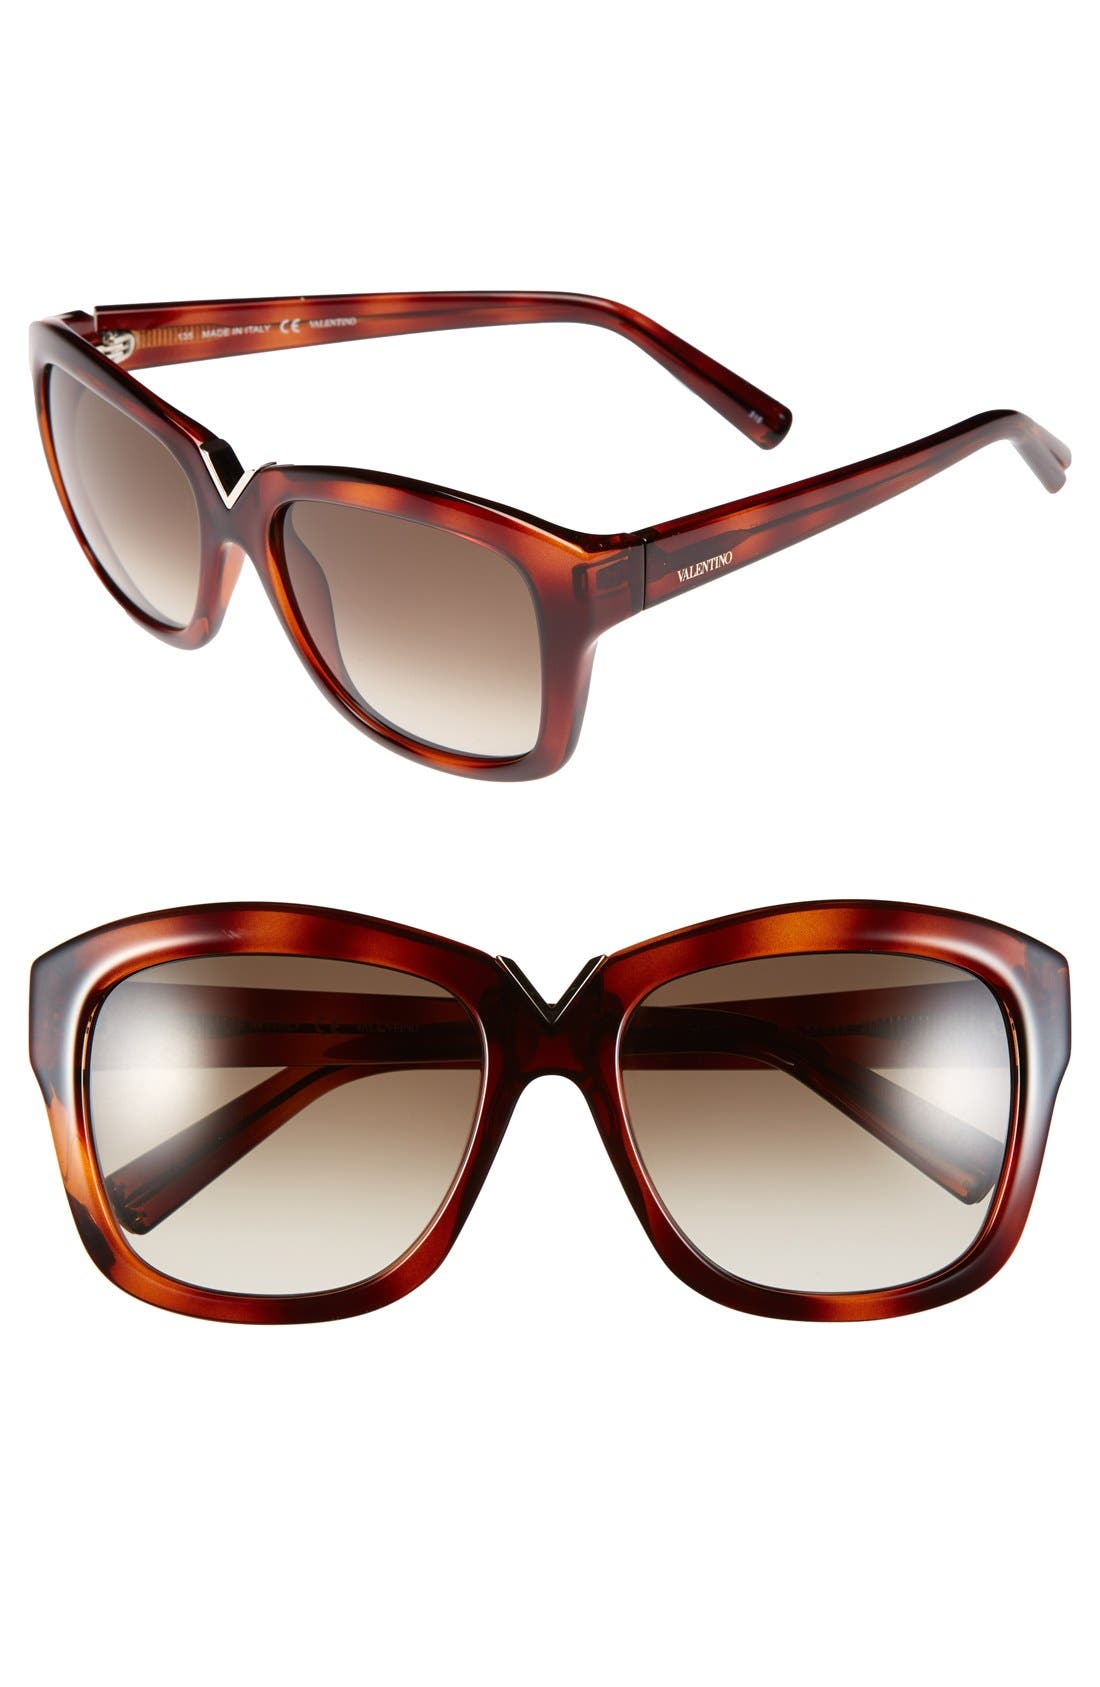 Main Image - Valentino 55mm Retro Sunglasses